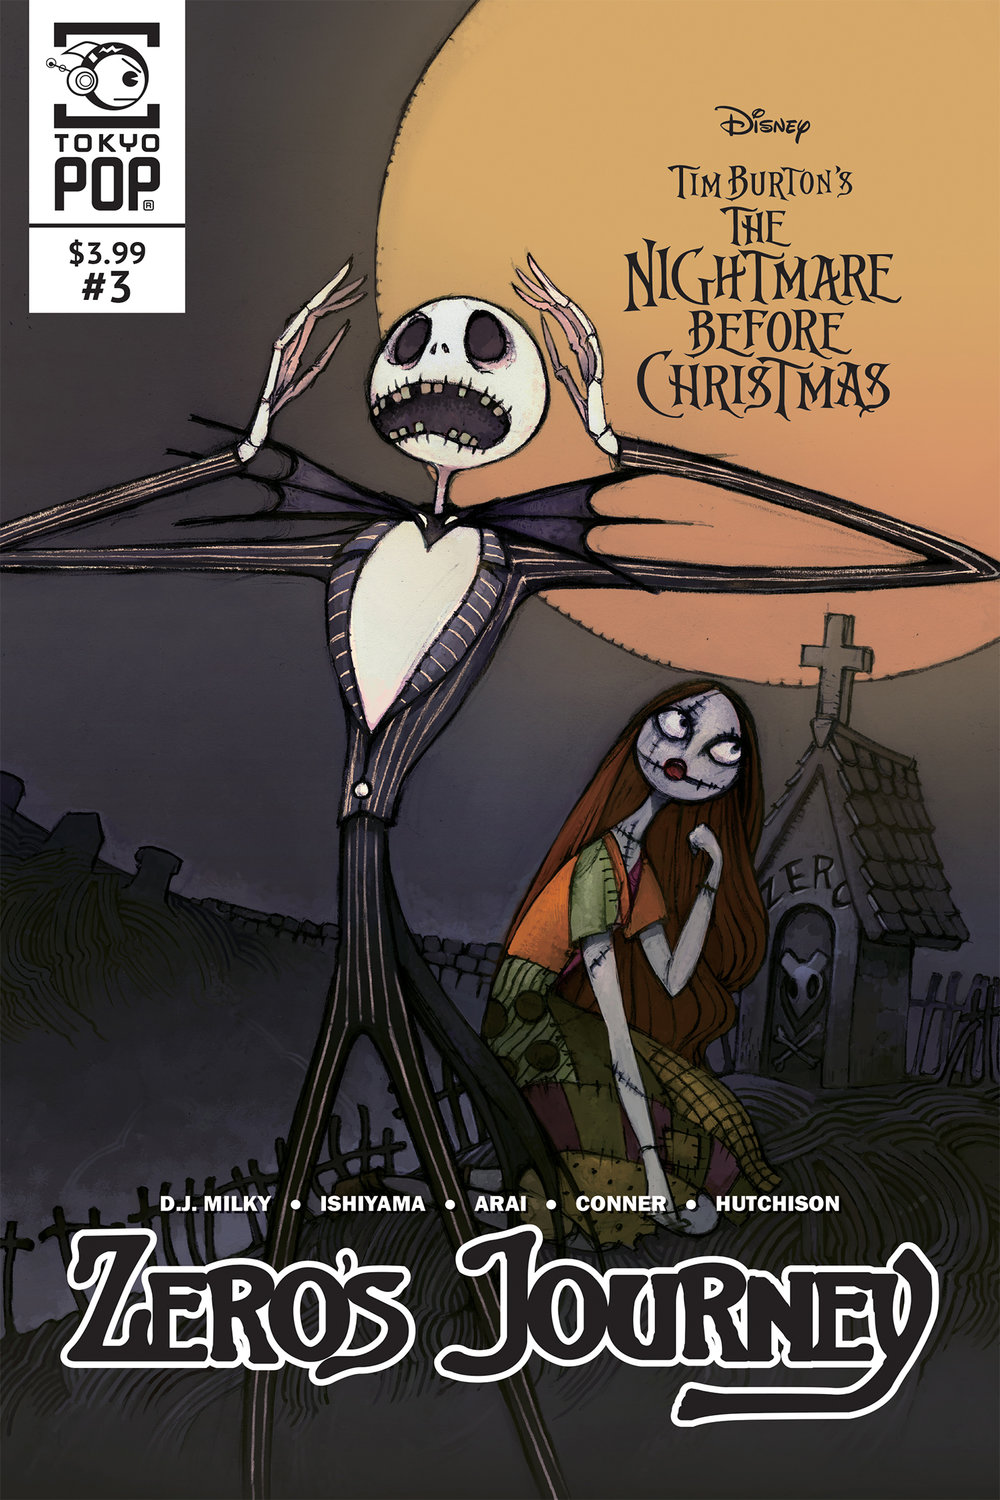 Disney_NightmareZero_Issue03_Cover.jpg